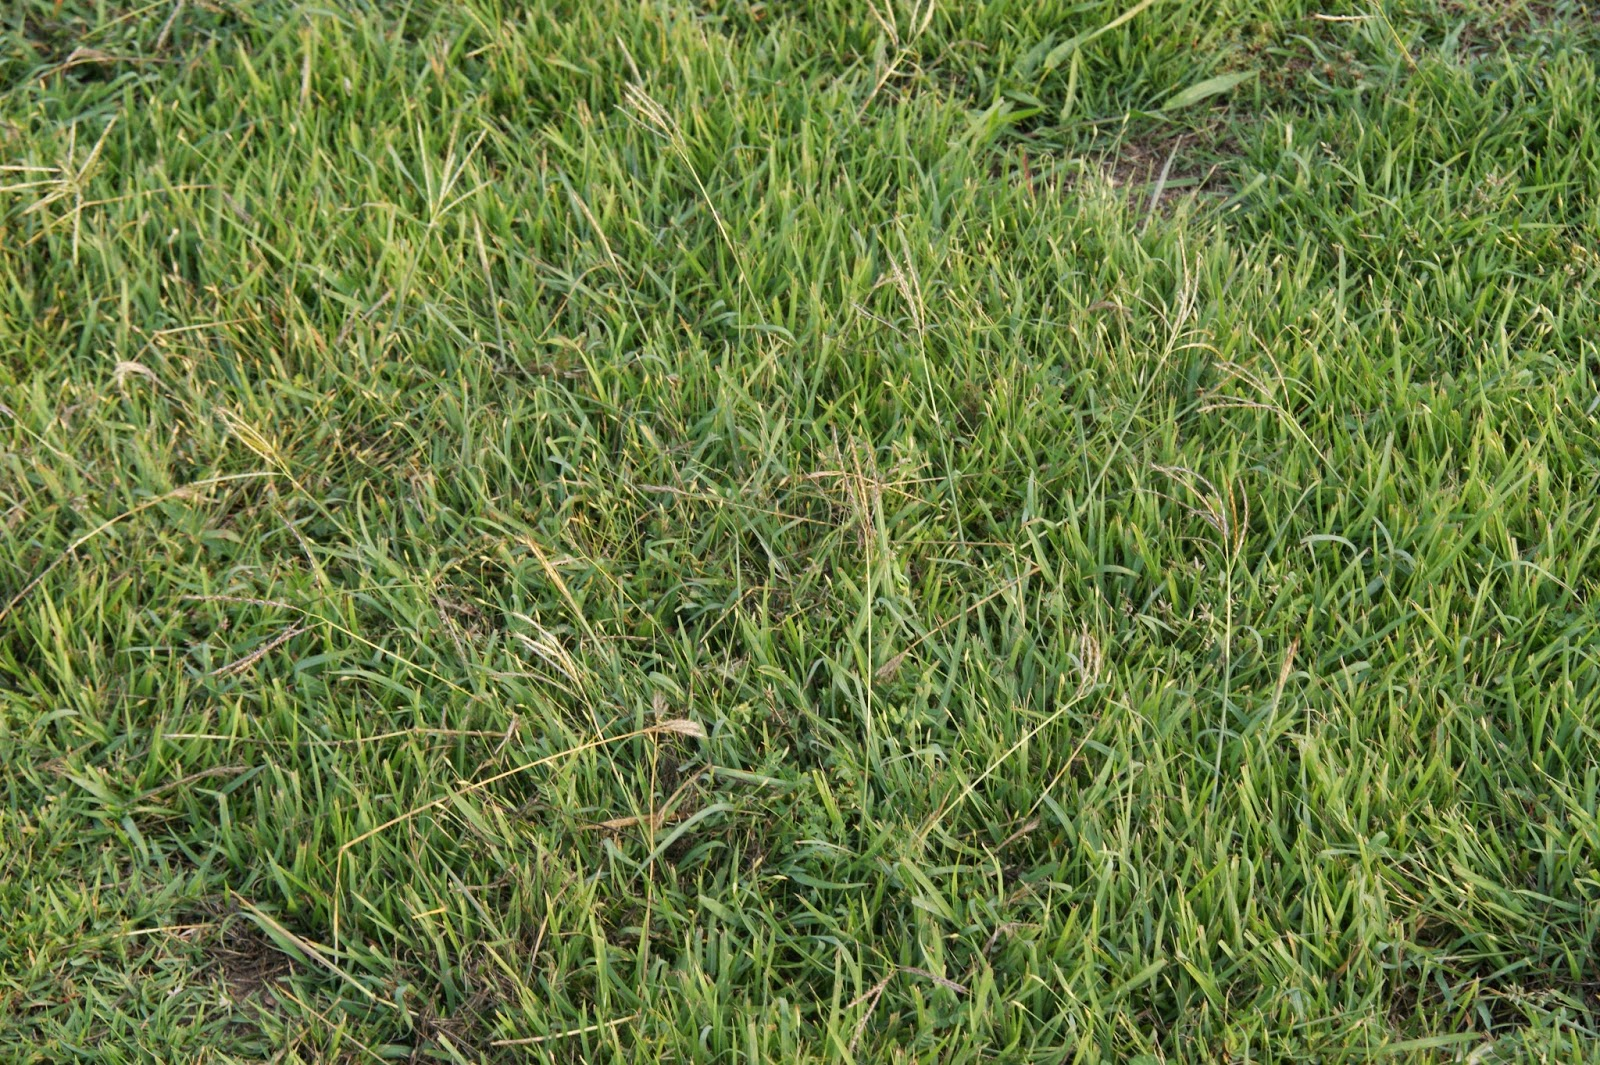 Abovecapricorn Zenith Zoysia Seed To Develop A New Oval In The Tropics Part 4 Maturing The Grass